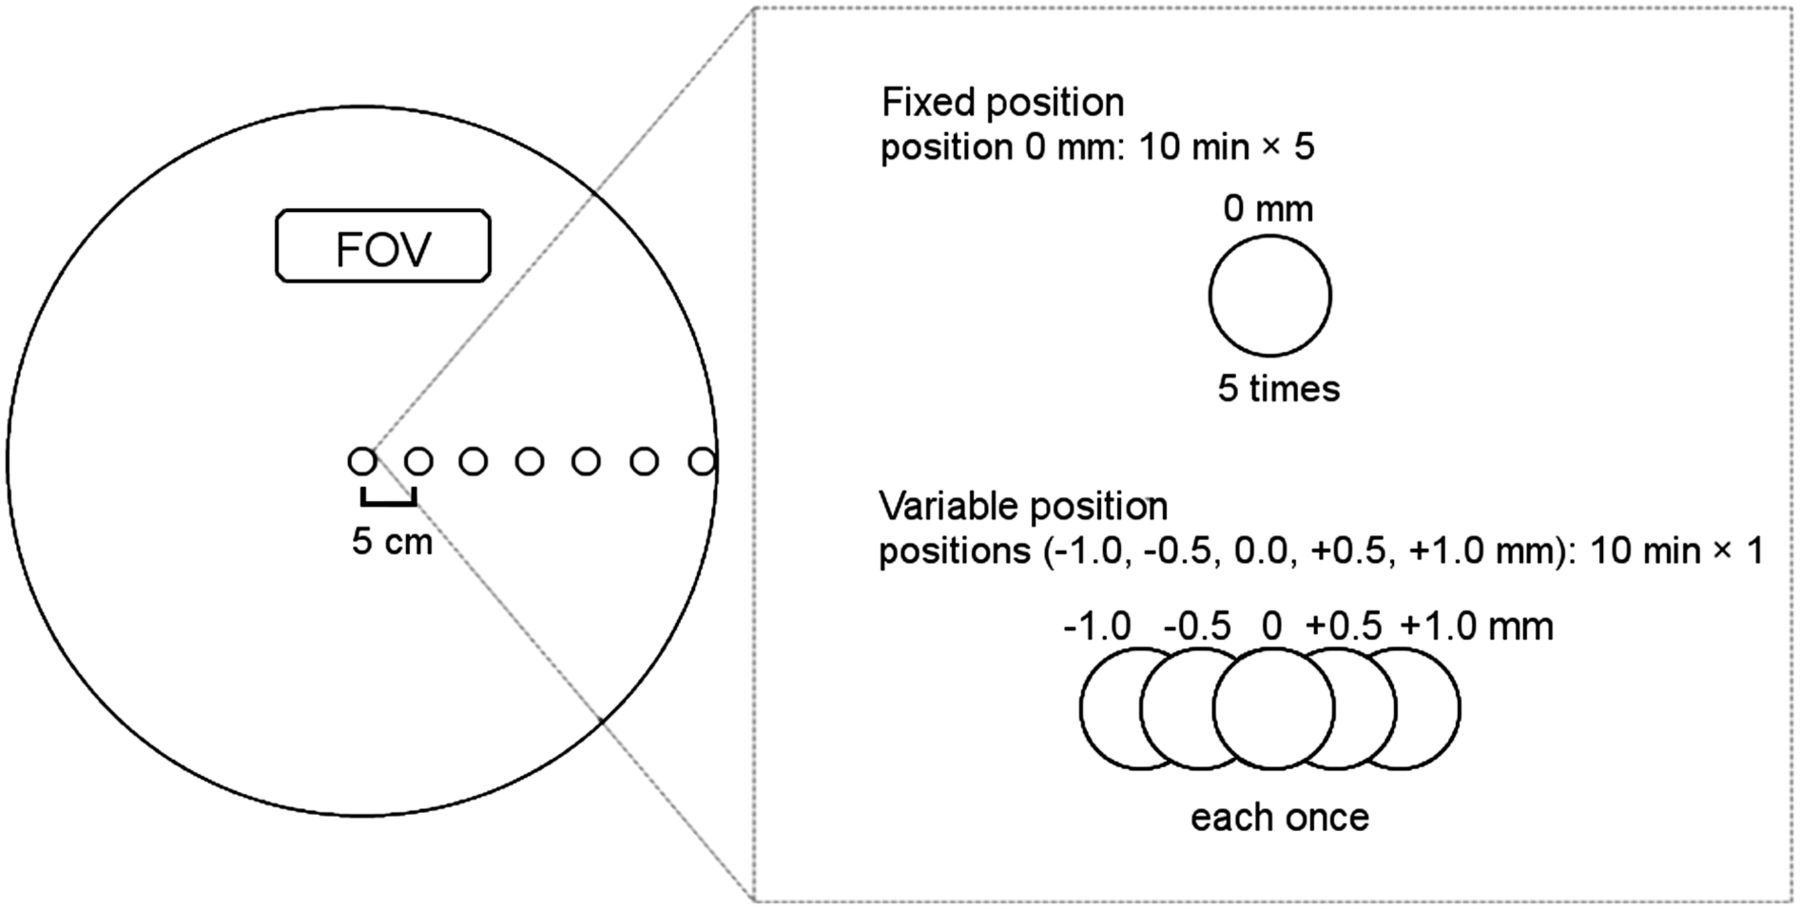 The Influence of Minimal Misalignment on the Repeatability of PET